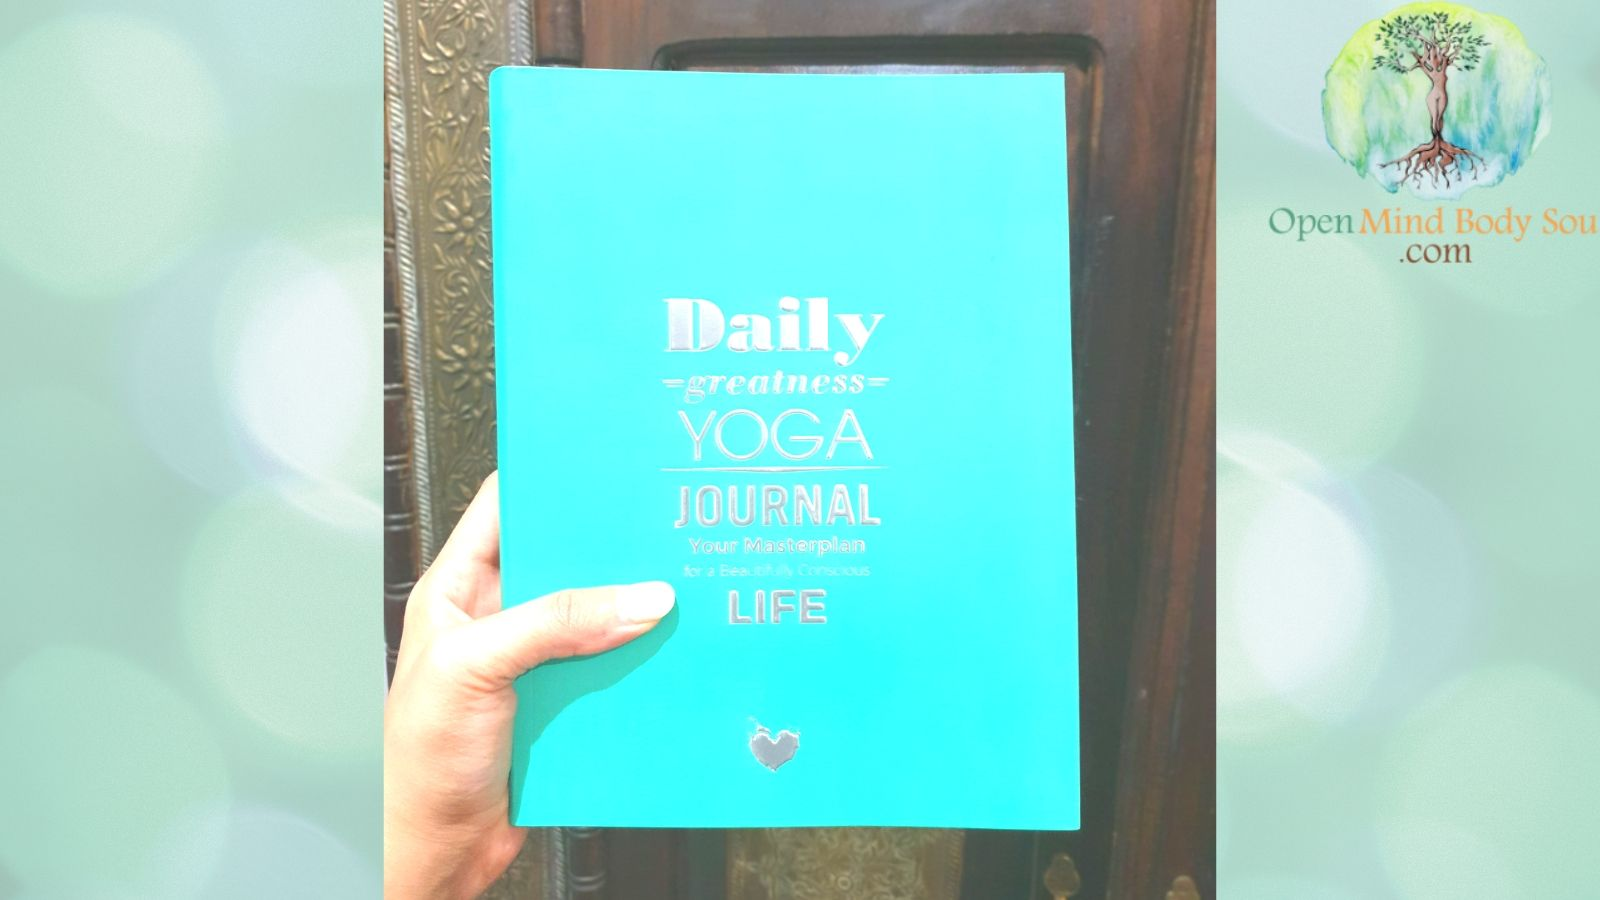 Daily-Greatness-Yoga-Journal-Review.jpg